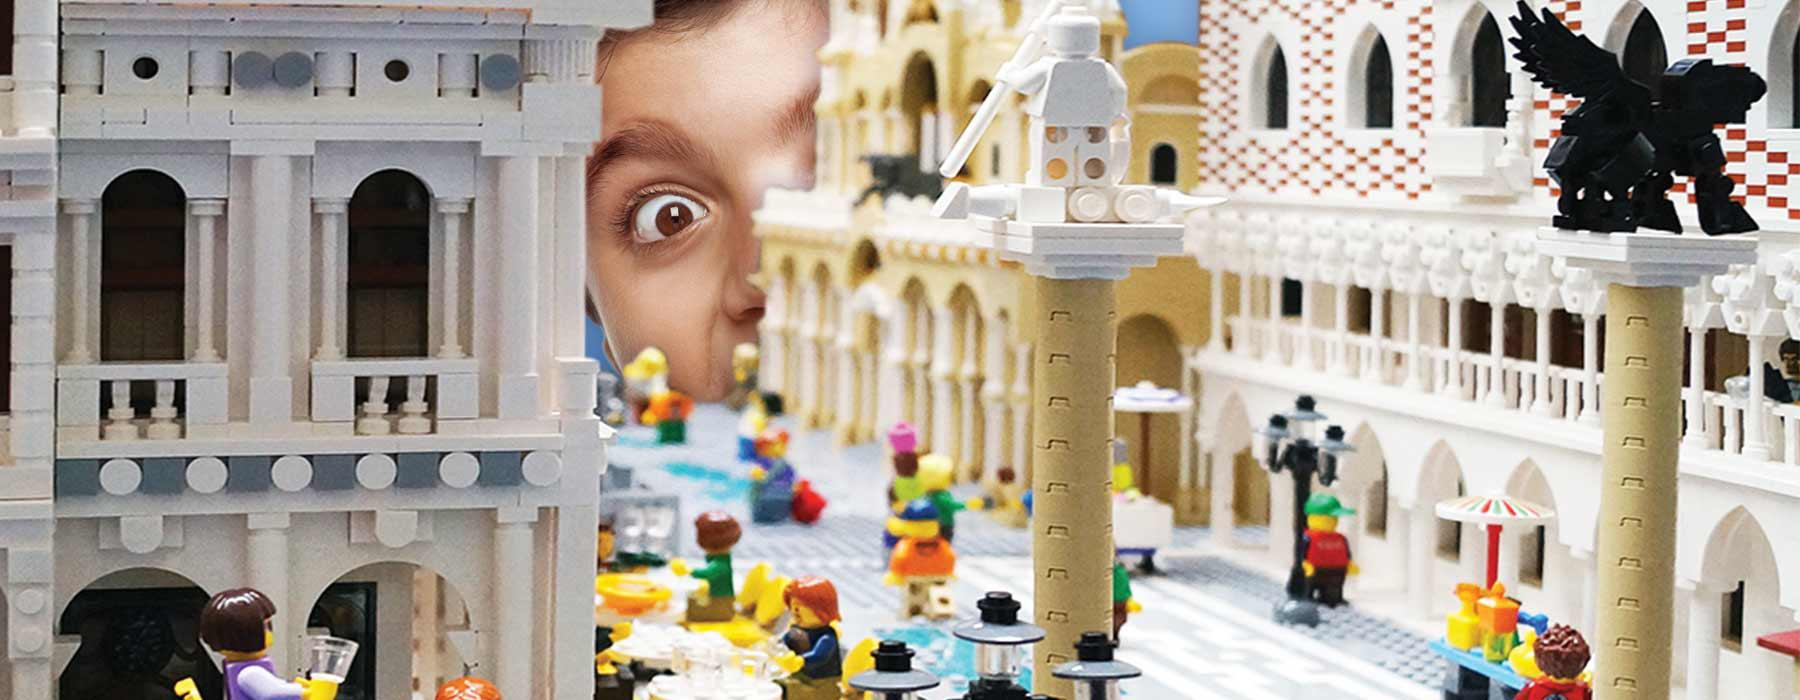 A boy looks at a LEGO town